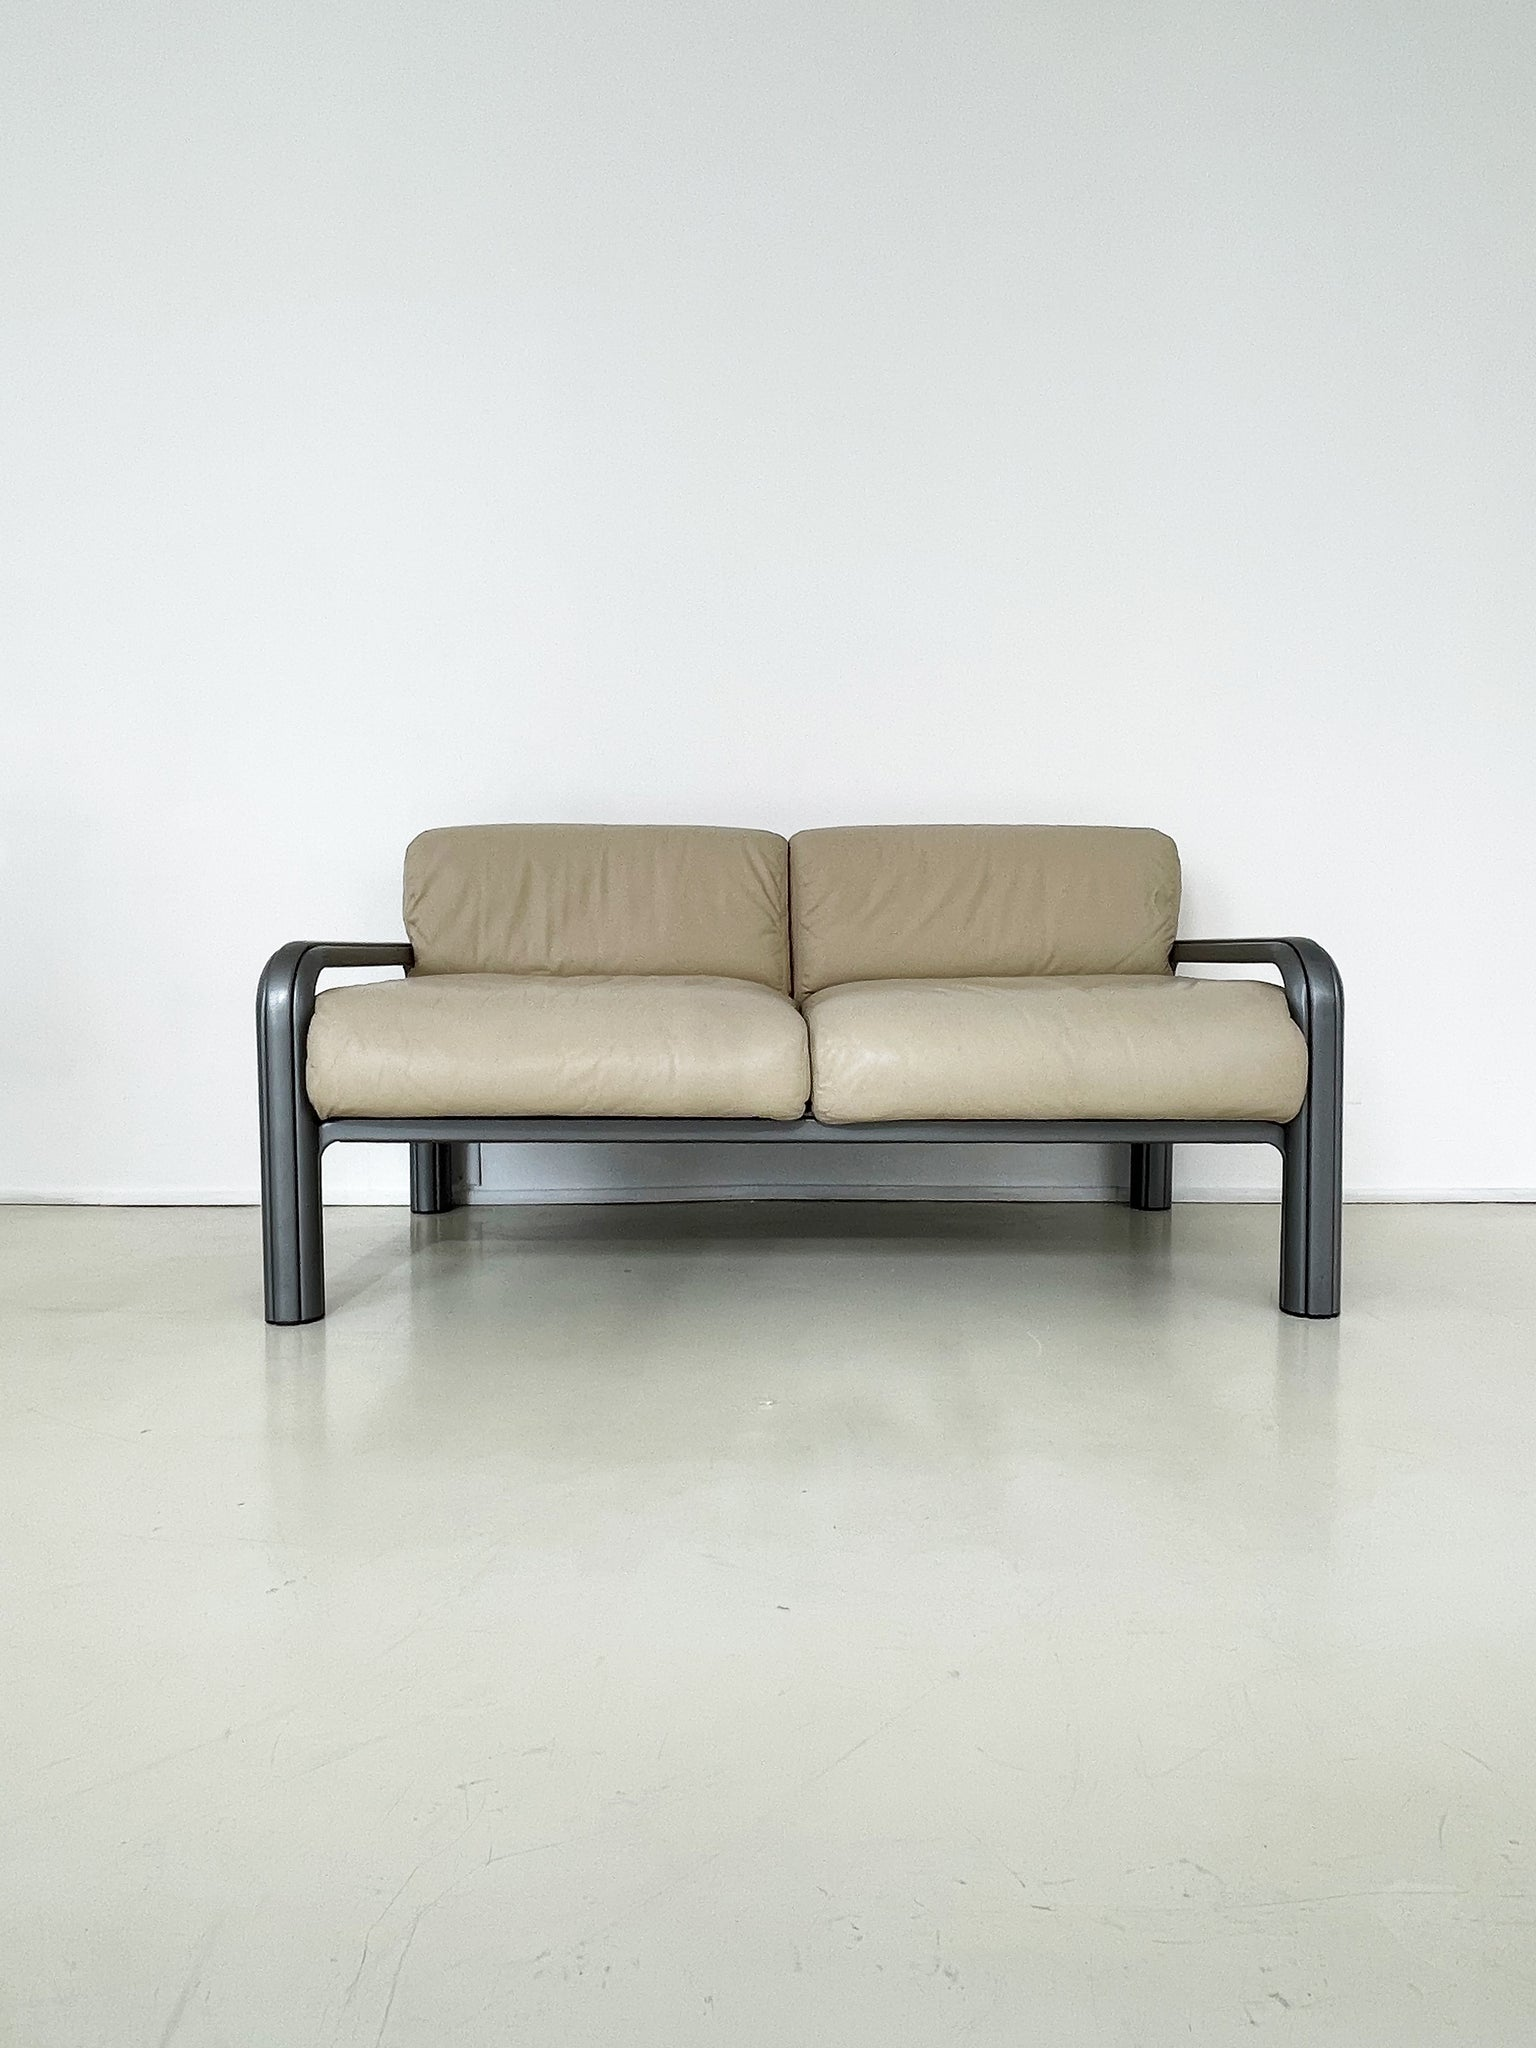 1970s Gae Aulenti Beige Leather Sette for Knoll